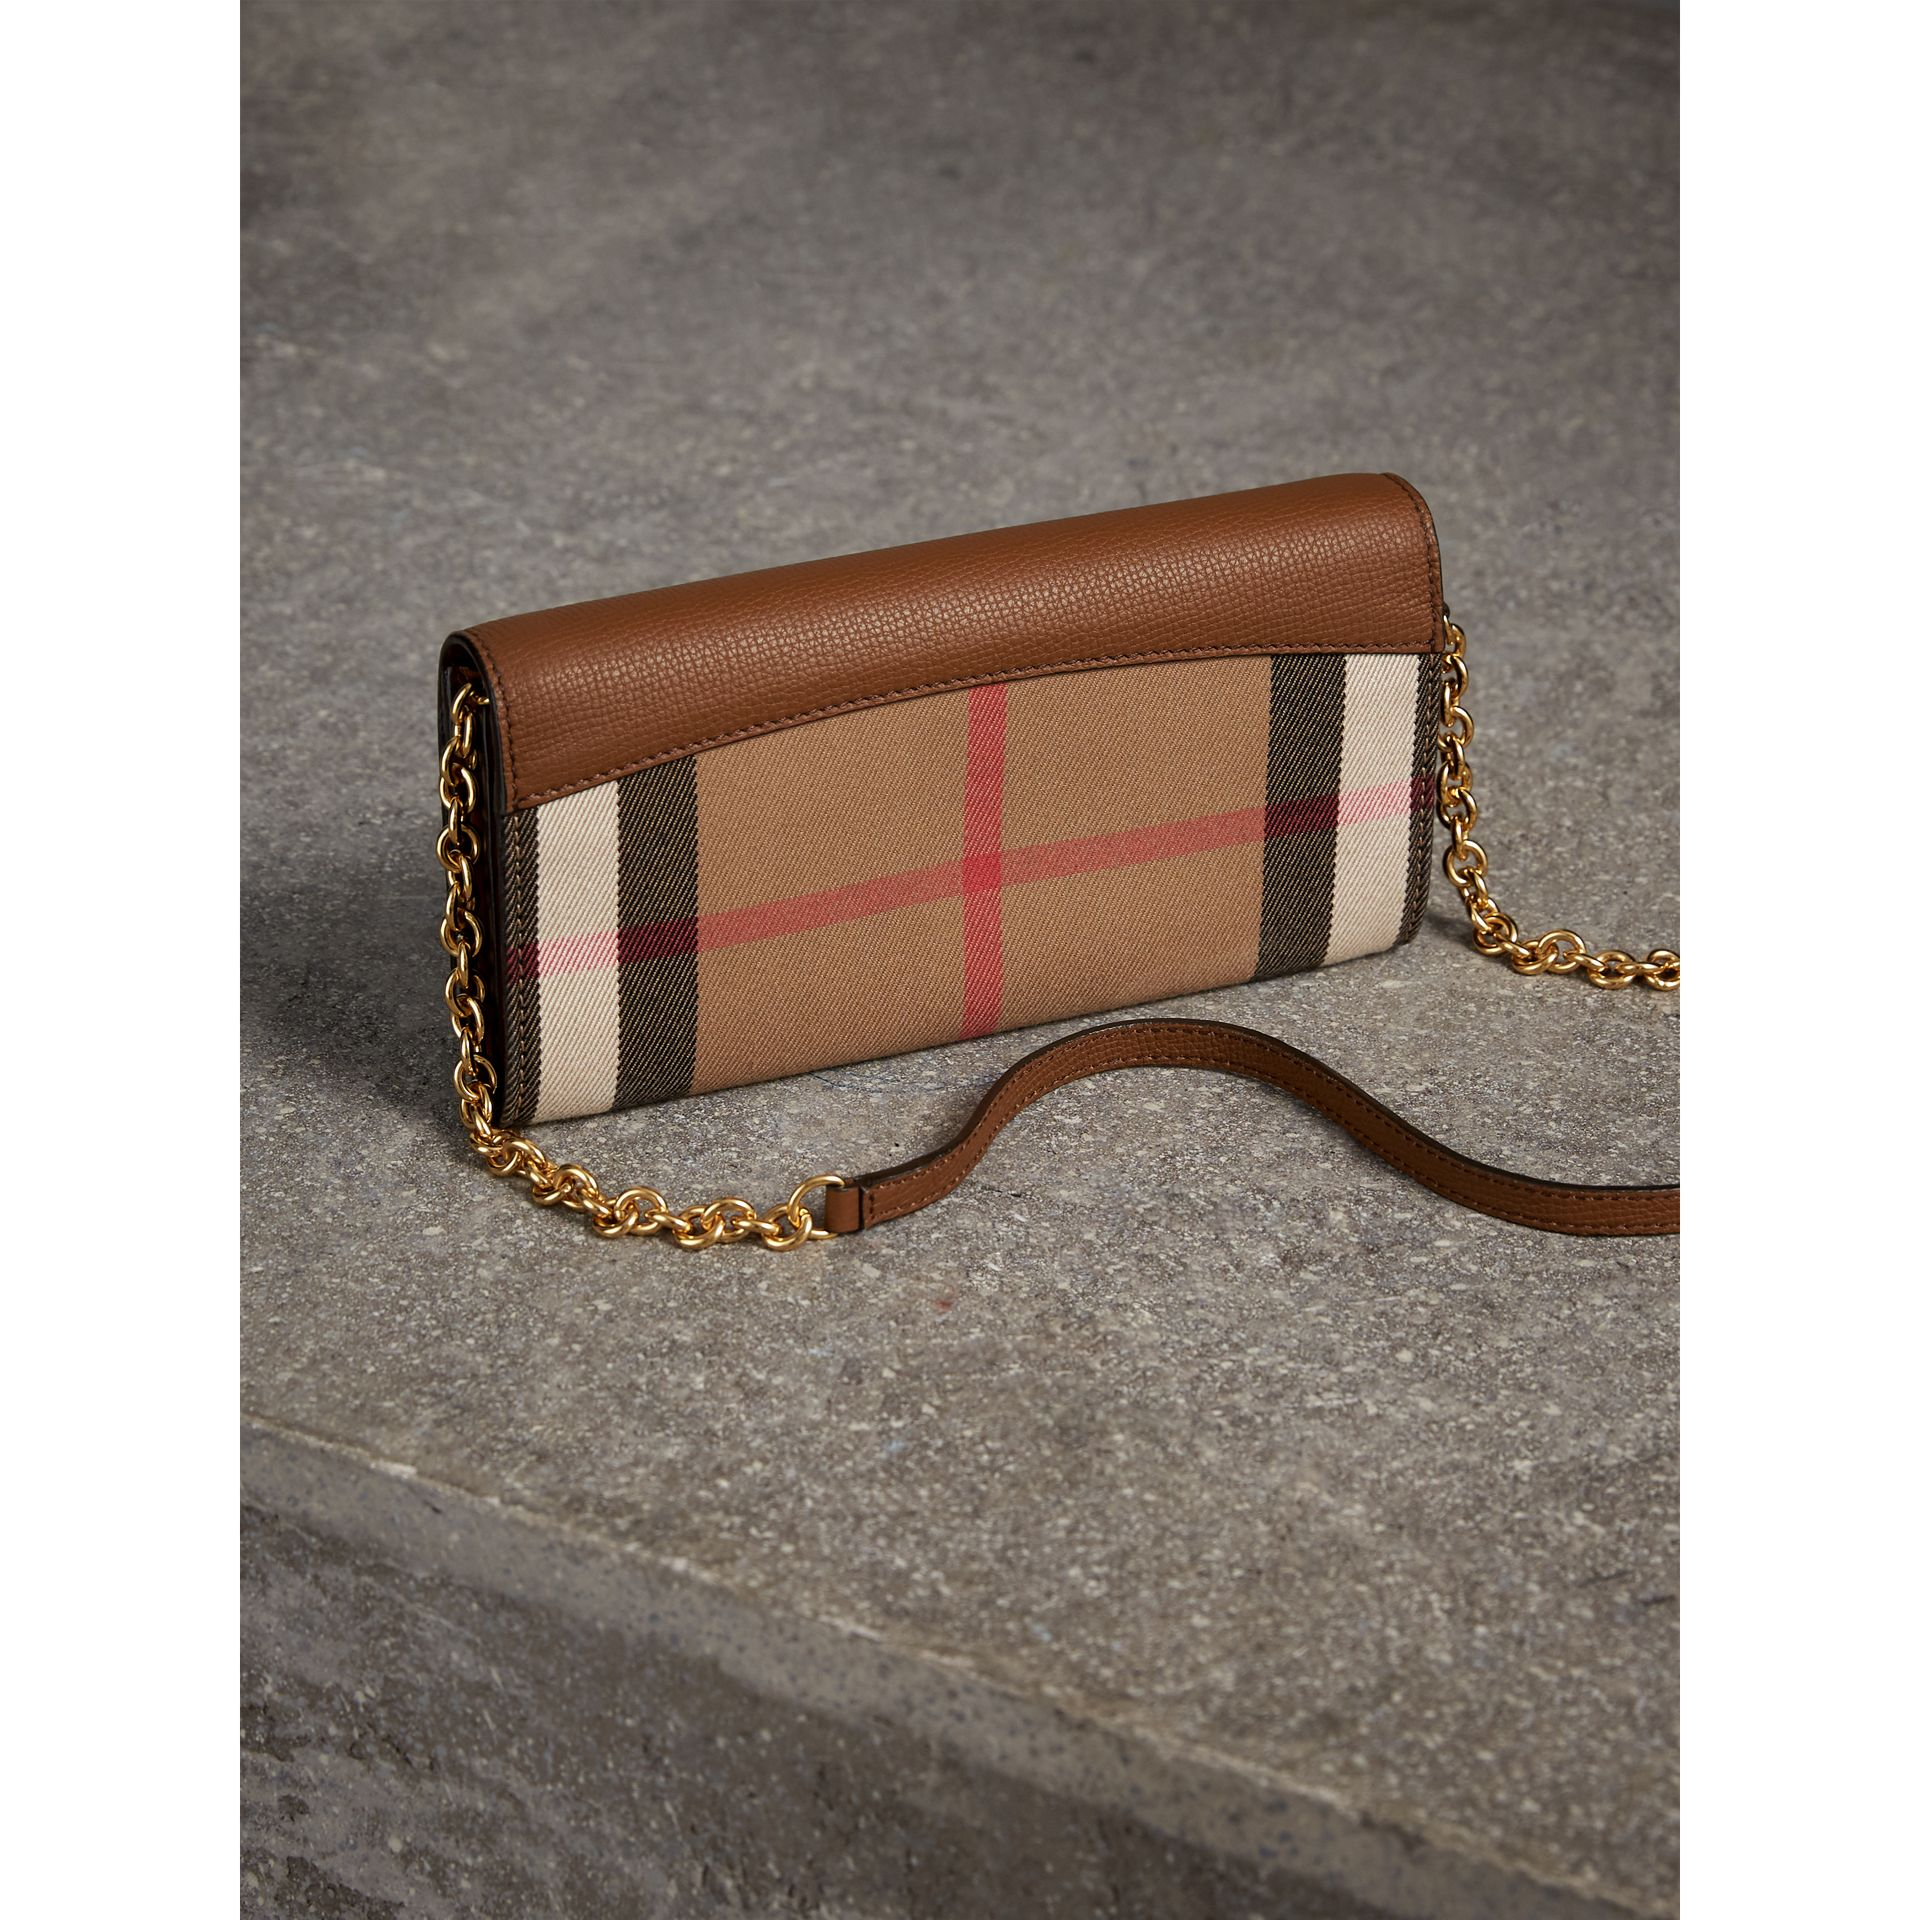 House Check and Leather Wallet with Chain in Tan - Women | Burberry Singapore - gallery image 5